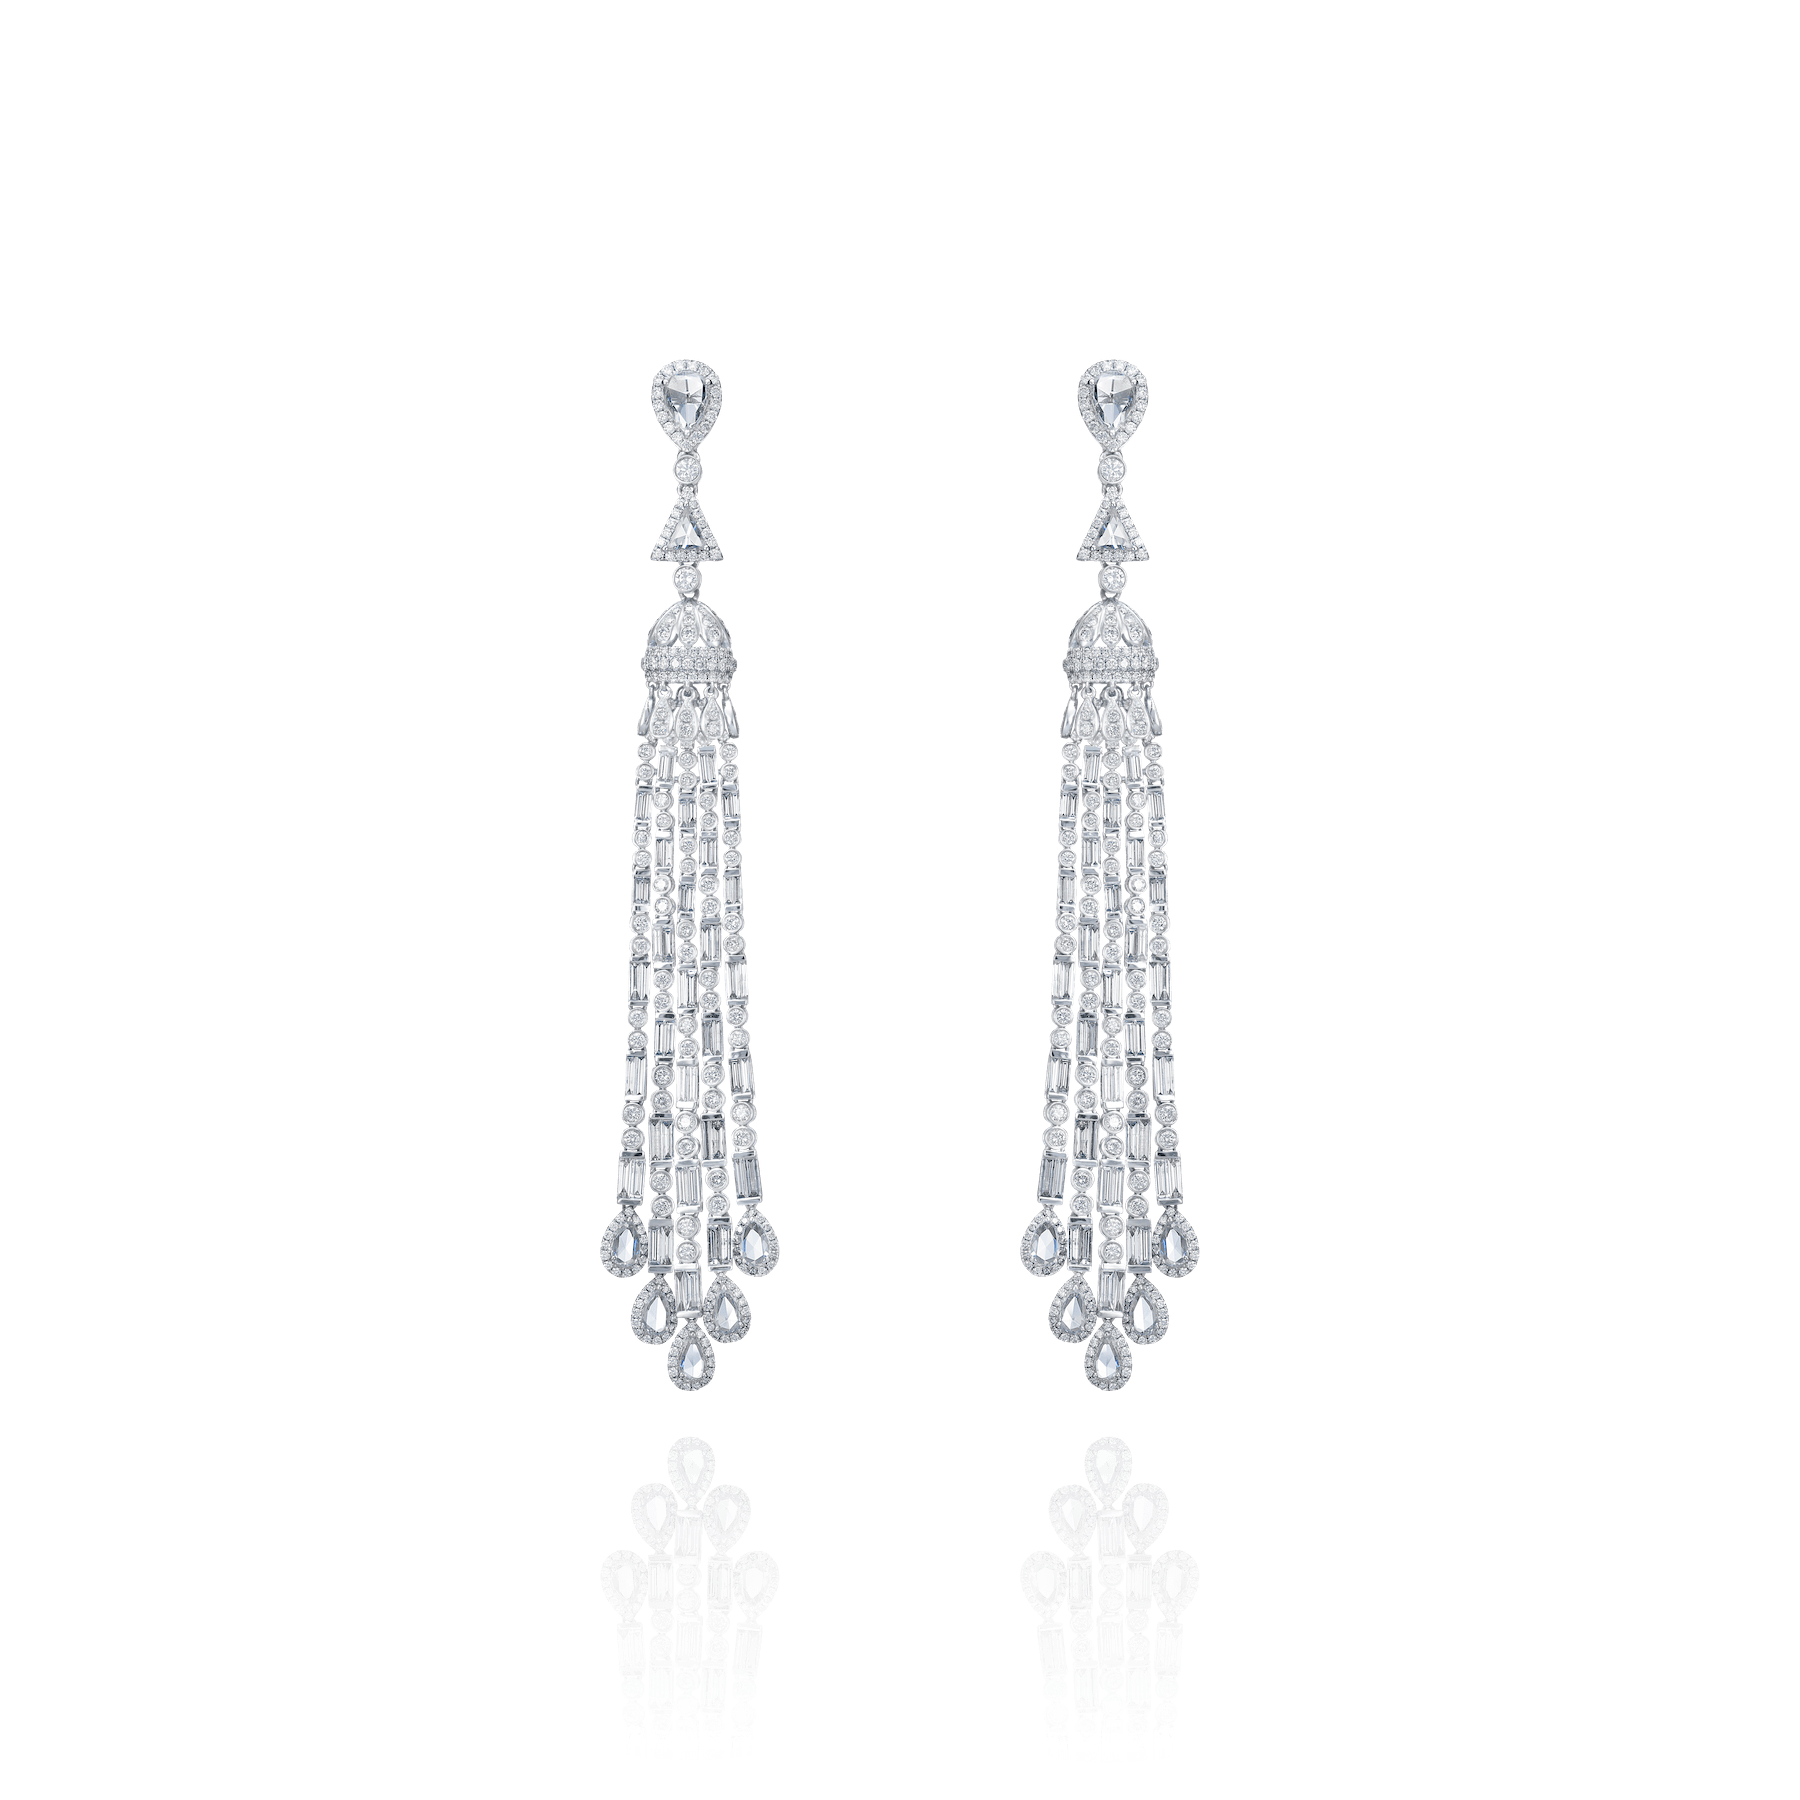 Gatsby Chandelier Earrings